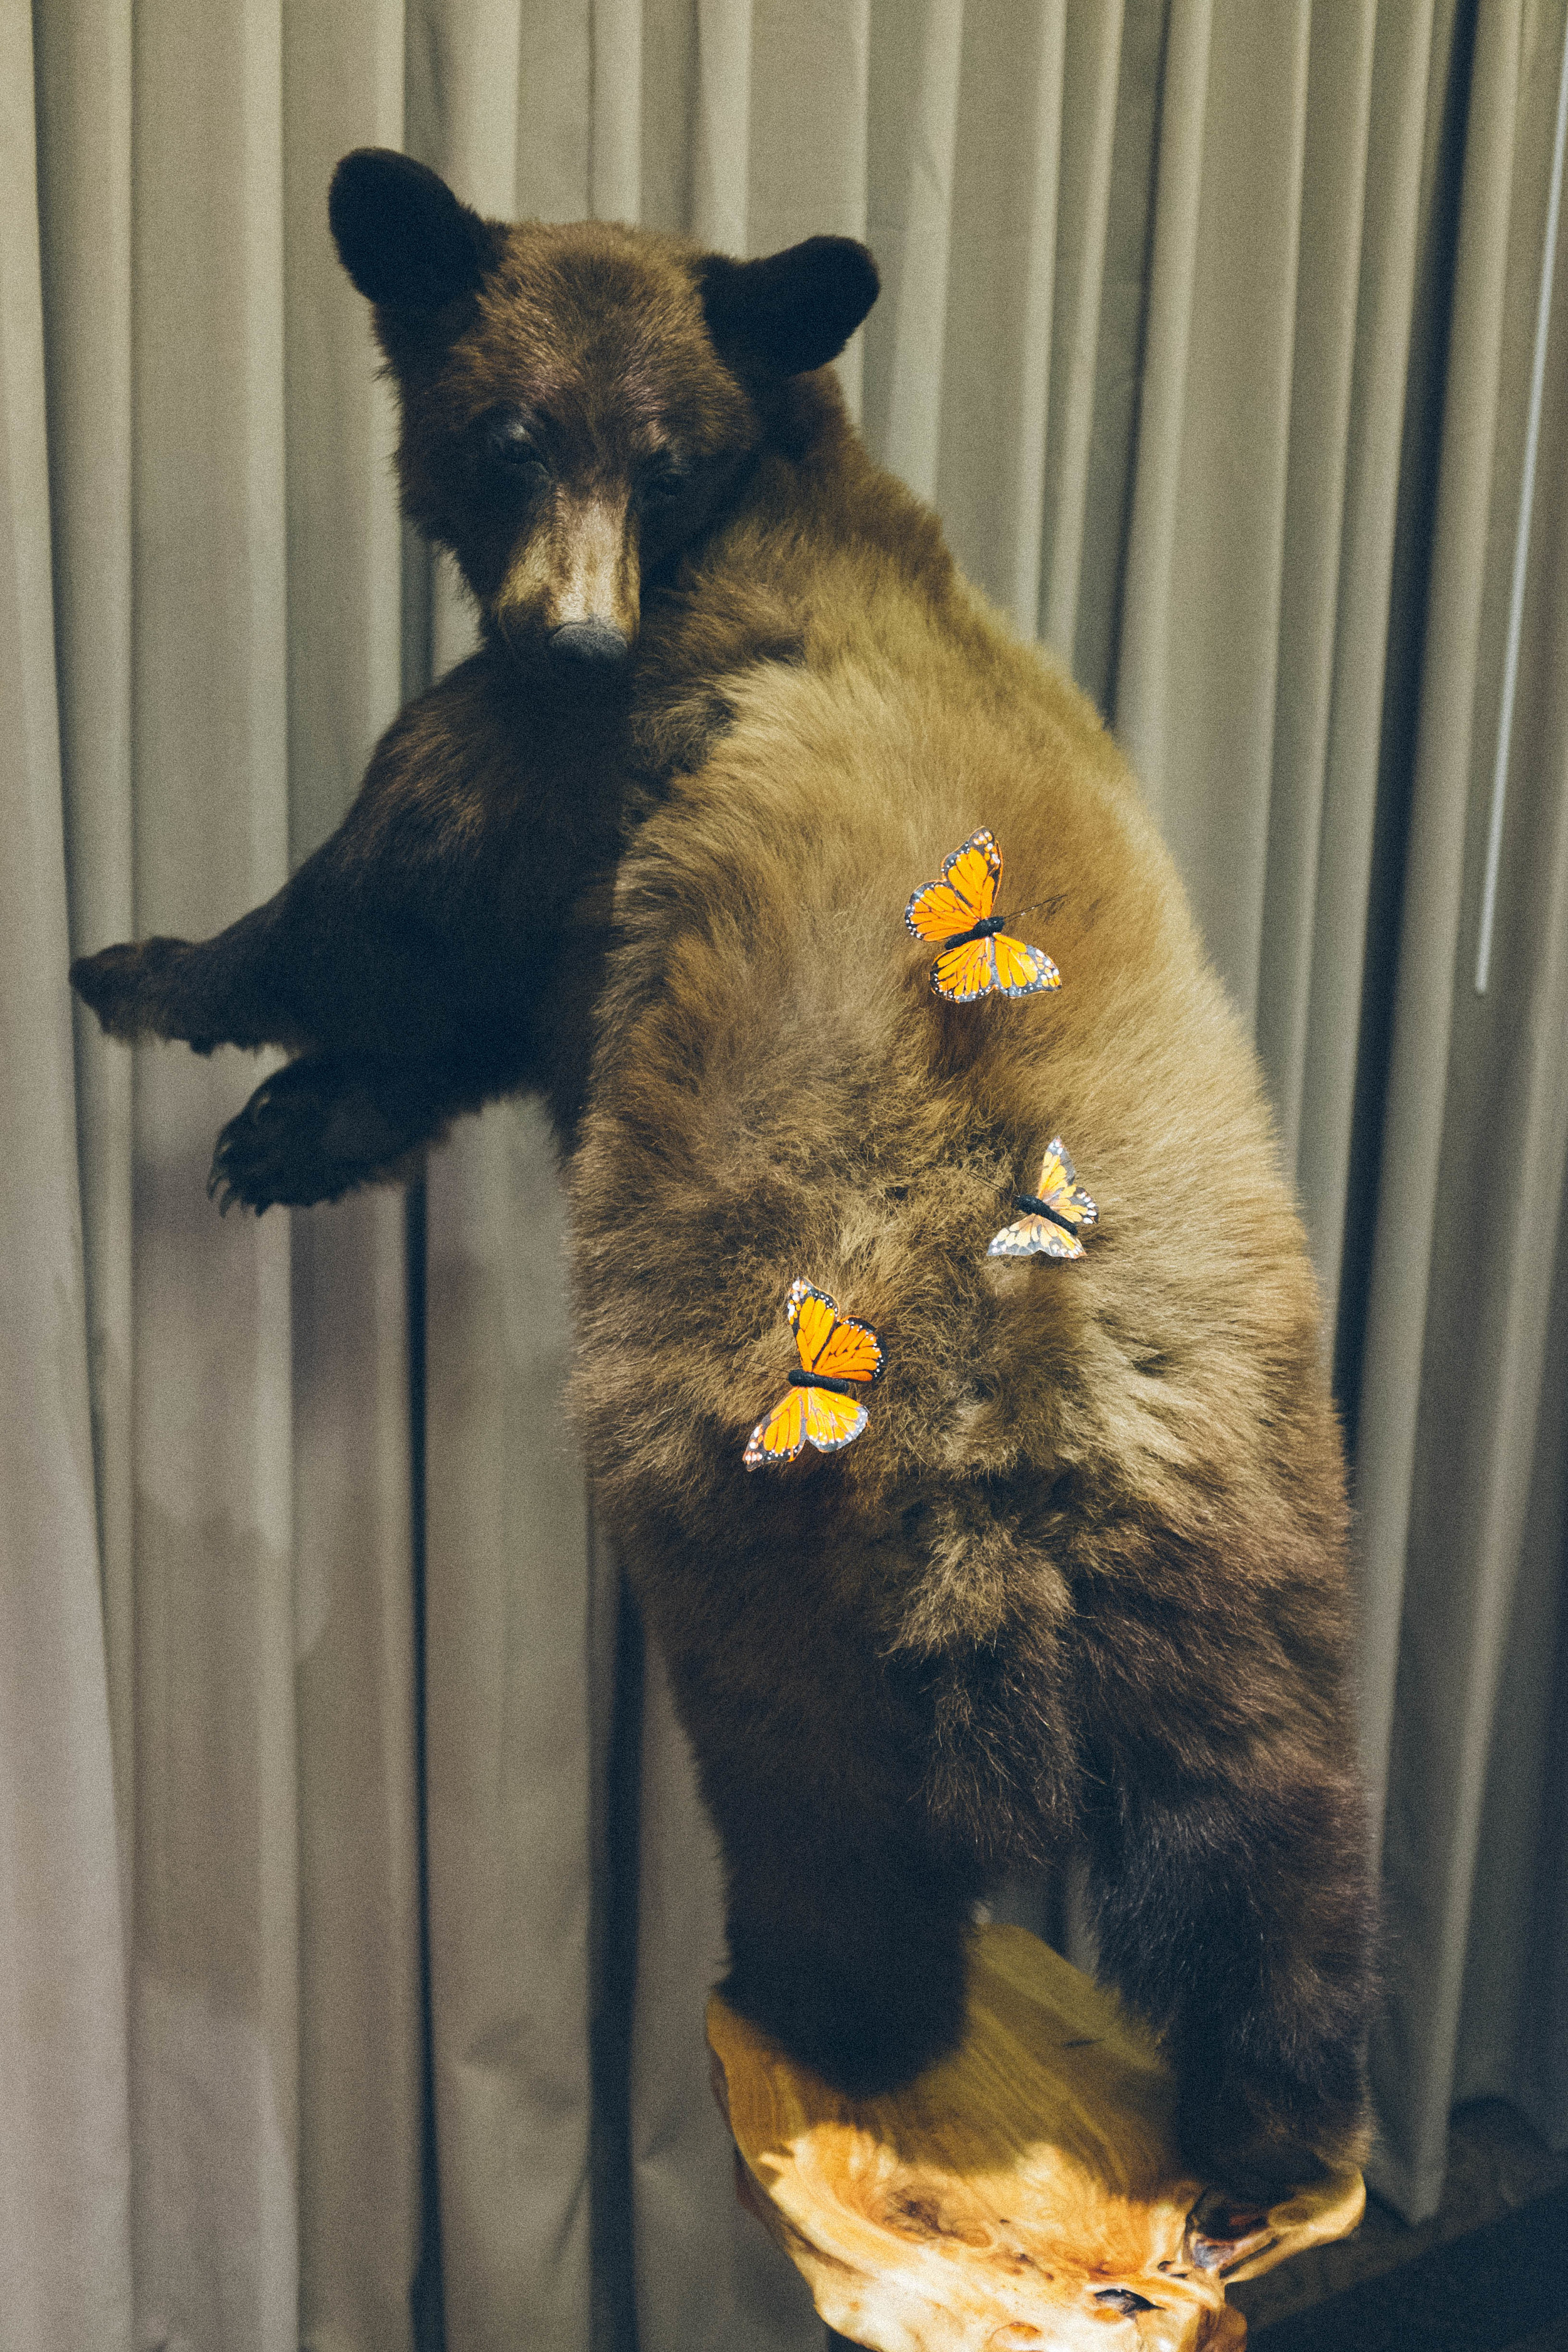 A bear frolicking with butterflies on its back? A bit of a hard sale.